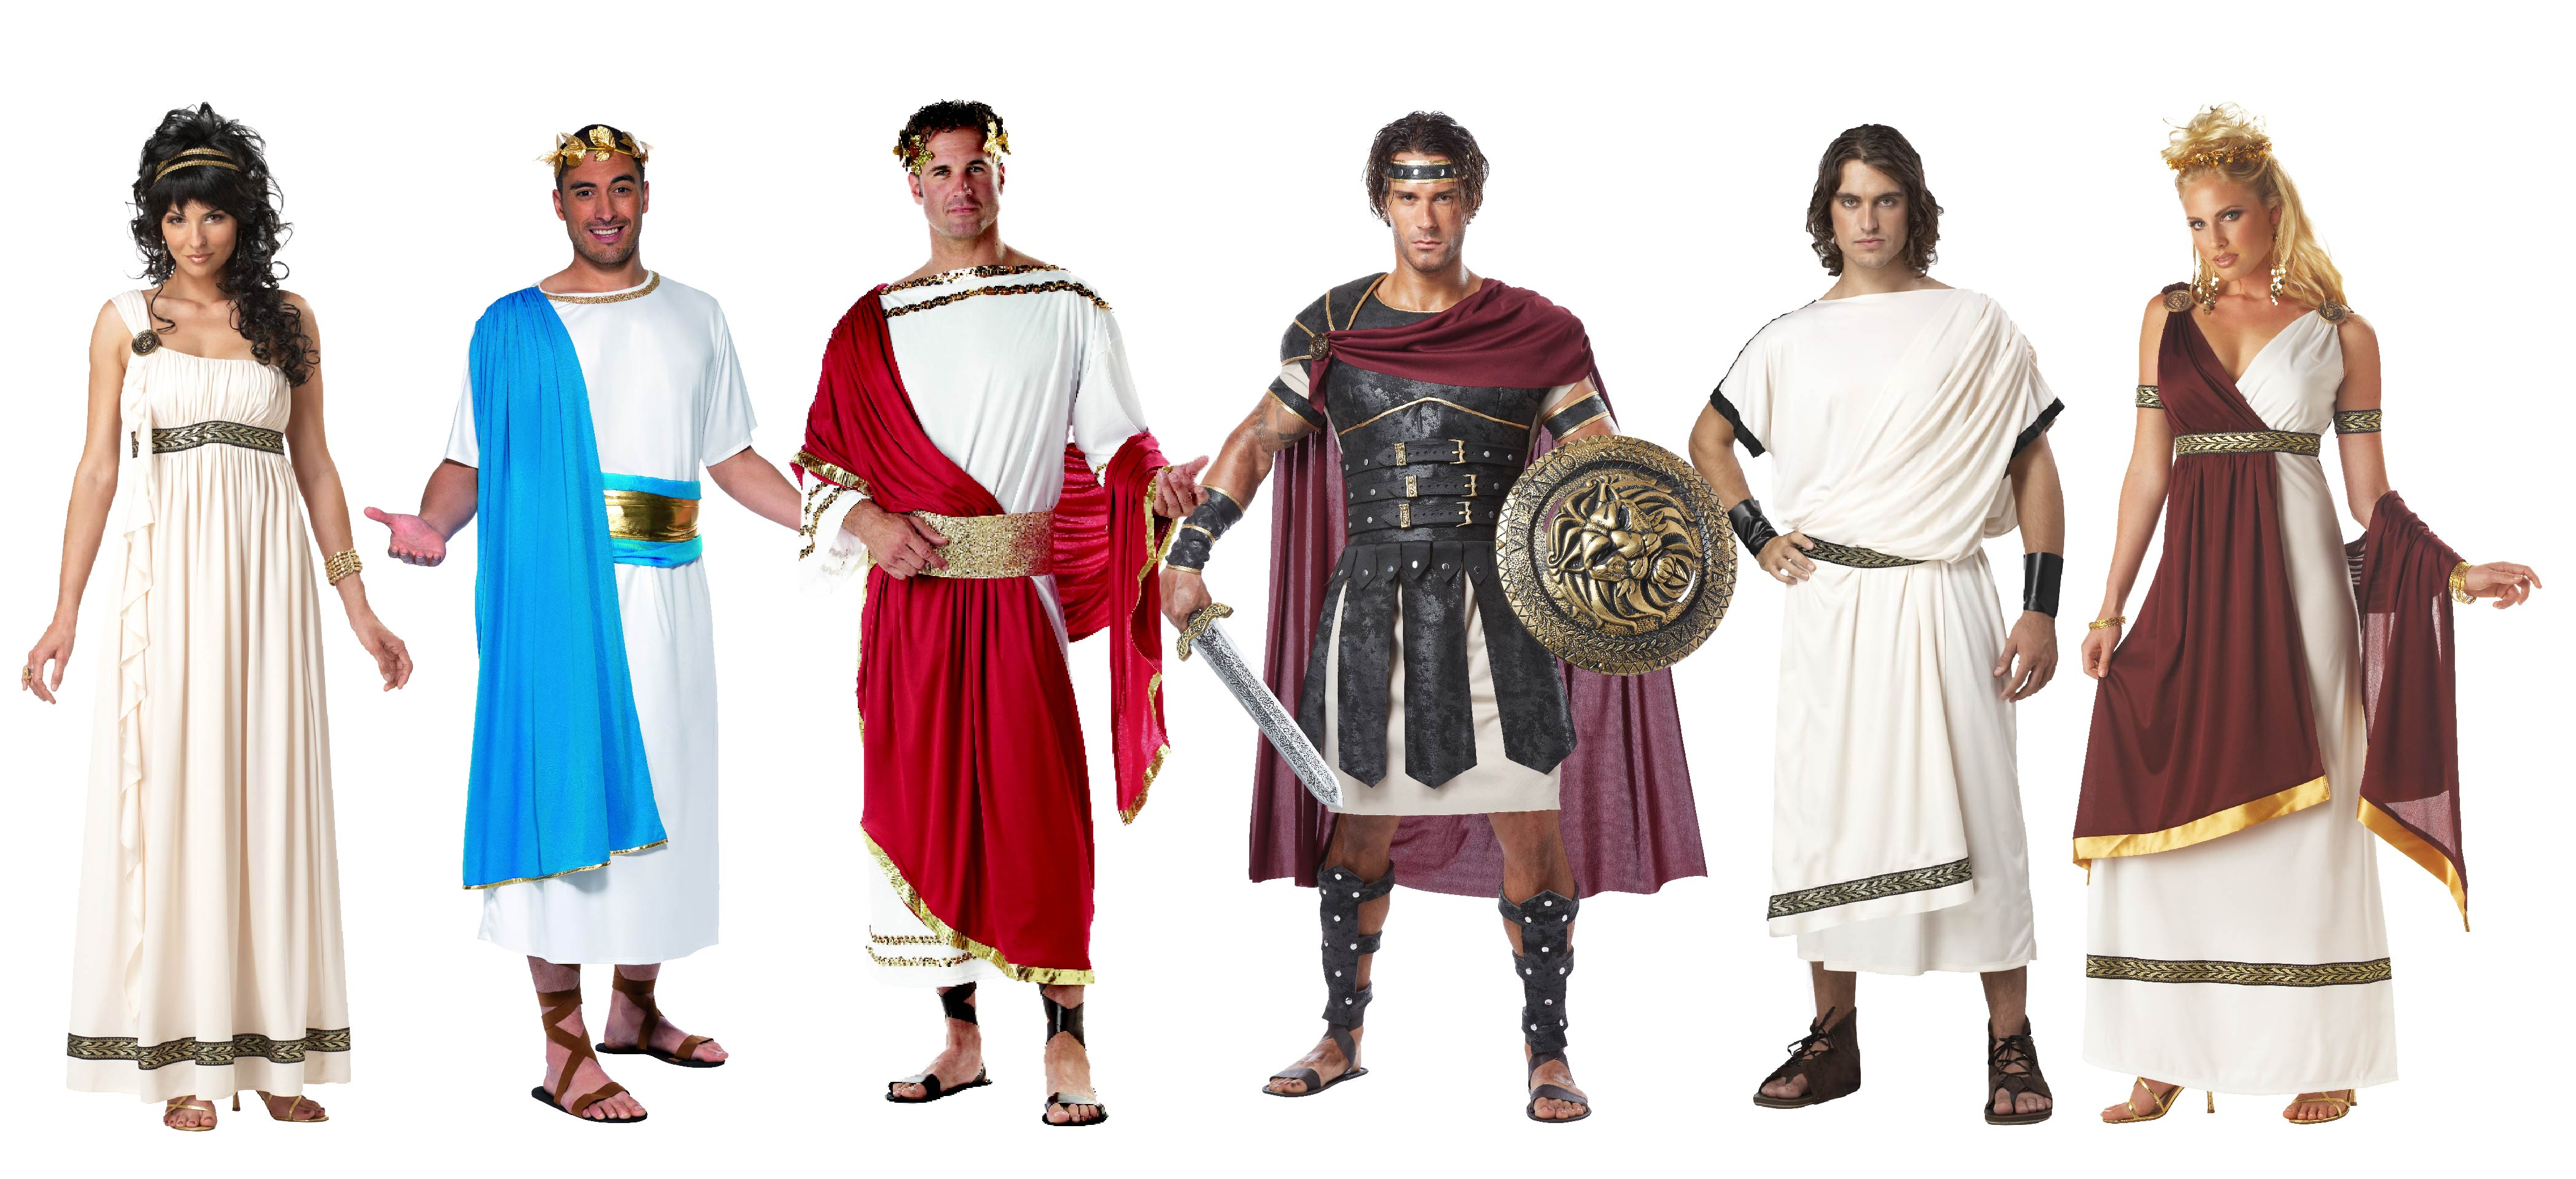 People wearing Roman Royalty group costume including warriors, emperors and queens.